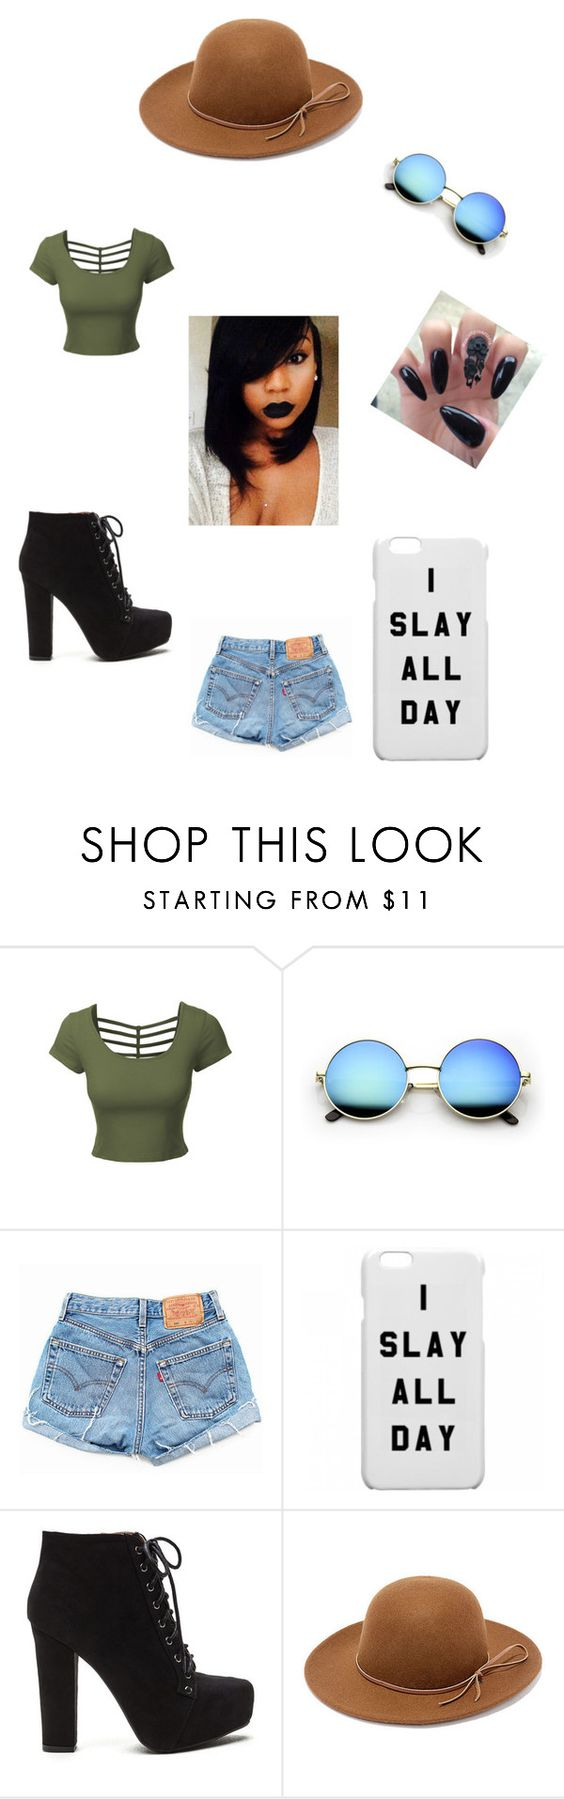 """""""All Mine"""" by alexis-clyde ❤ liked on Polyvore featuring LE3NO, Levi's, RHYTHM and Fire"""